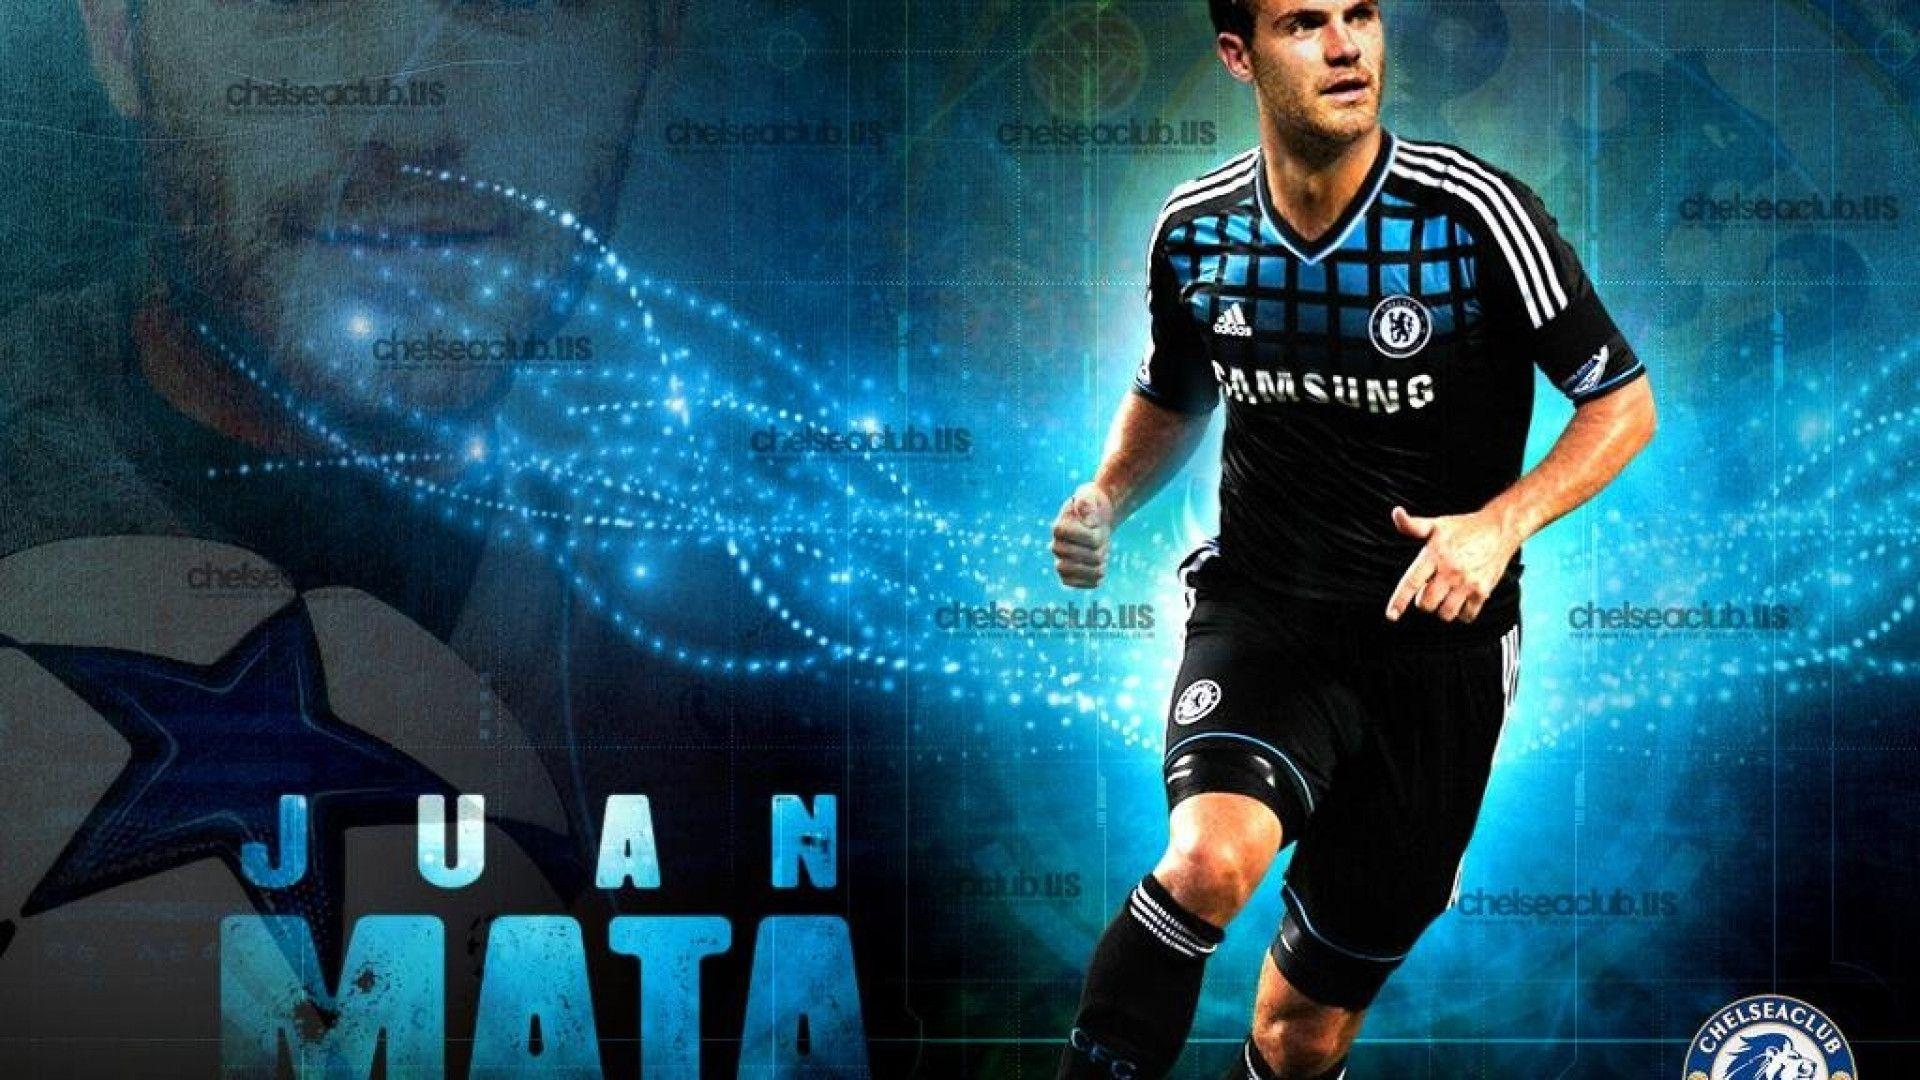 Juan-Mata full hd wallpaper - www.TrendingHDwallpapers.com